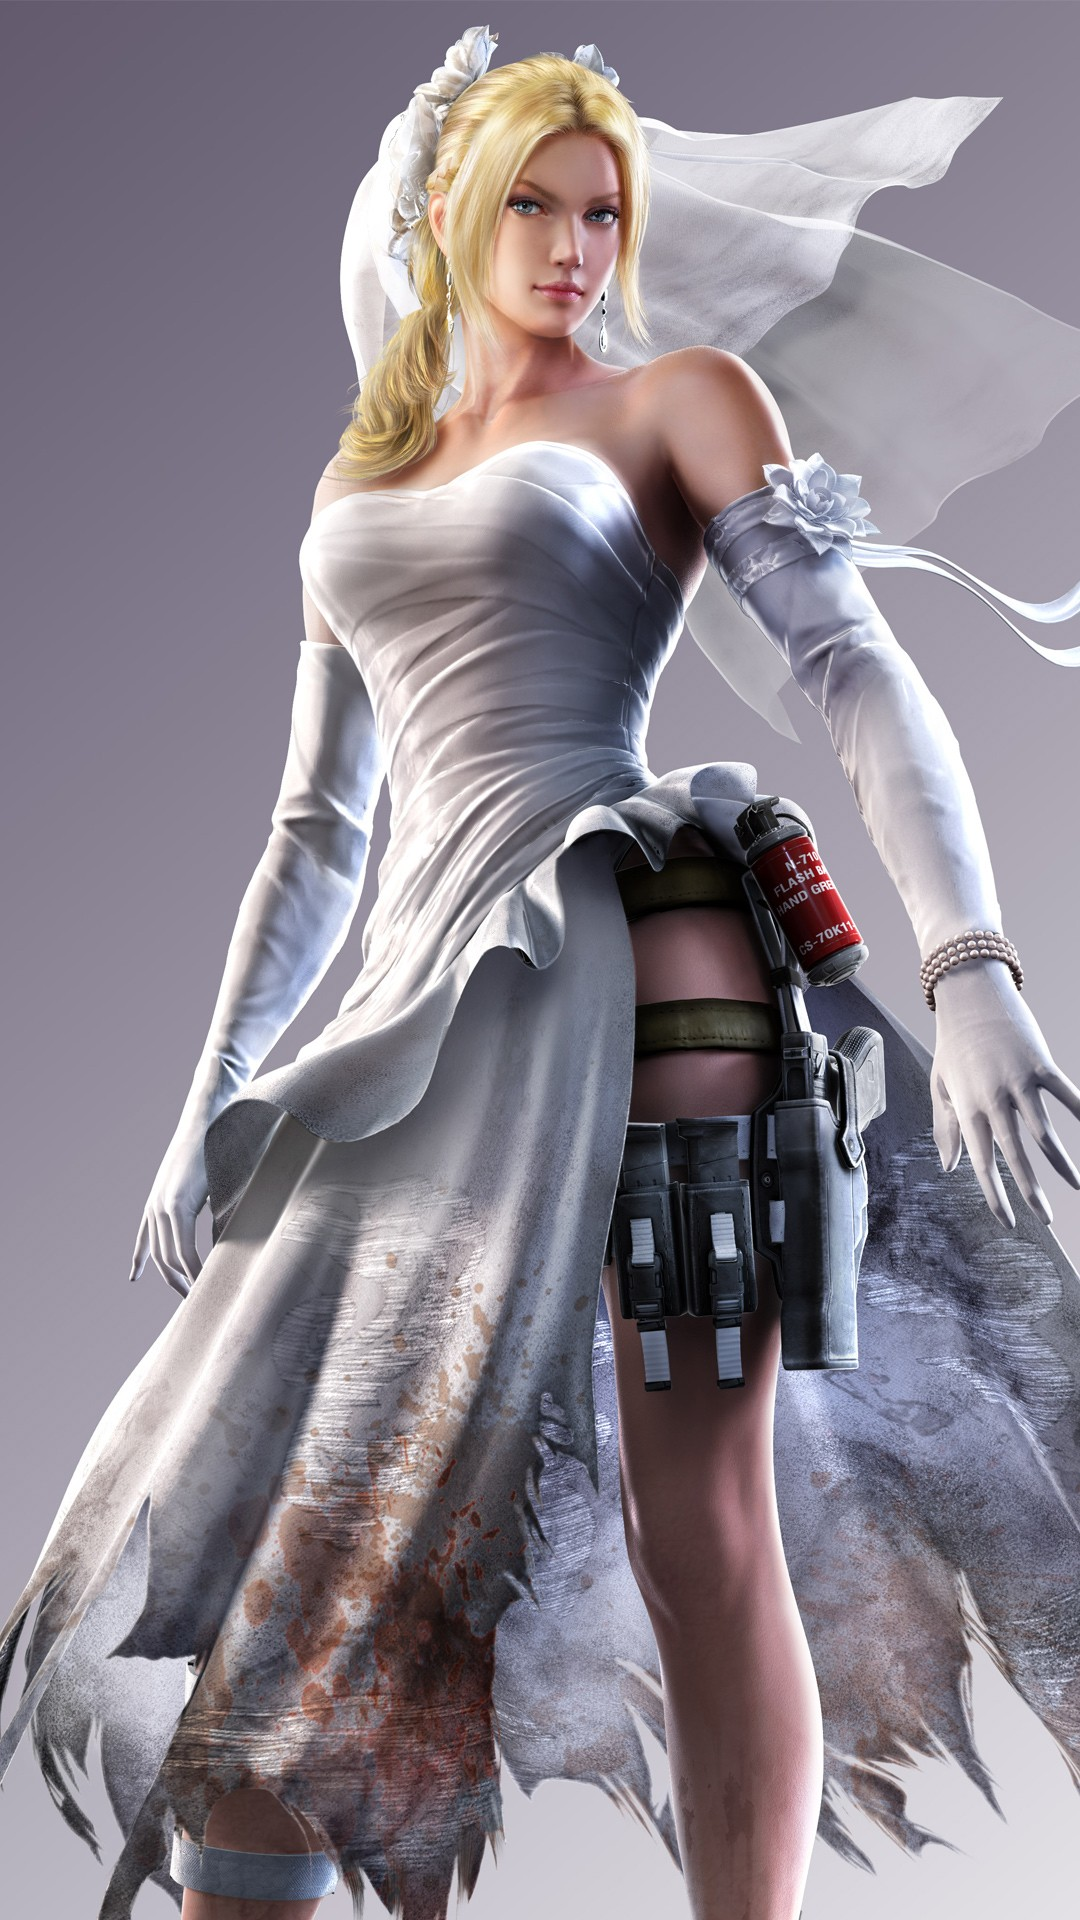 Motivational Quotes Wallpapers Iphone 6 Street Fighter X Tekken Nina Williams Wallpapers Hd